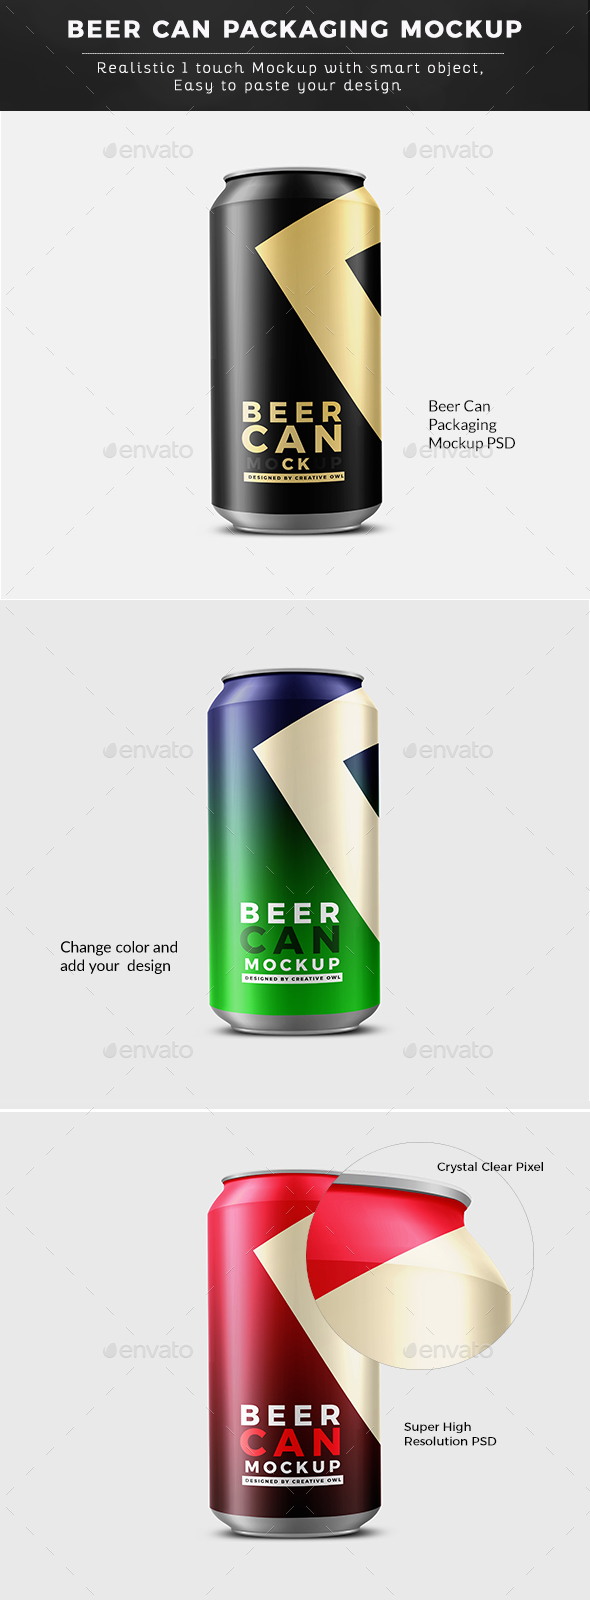 Pepsi Graphics, Designs & Templates from GraphicRiver